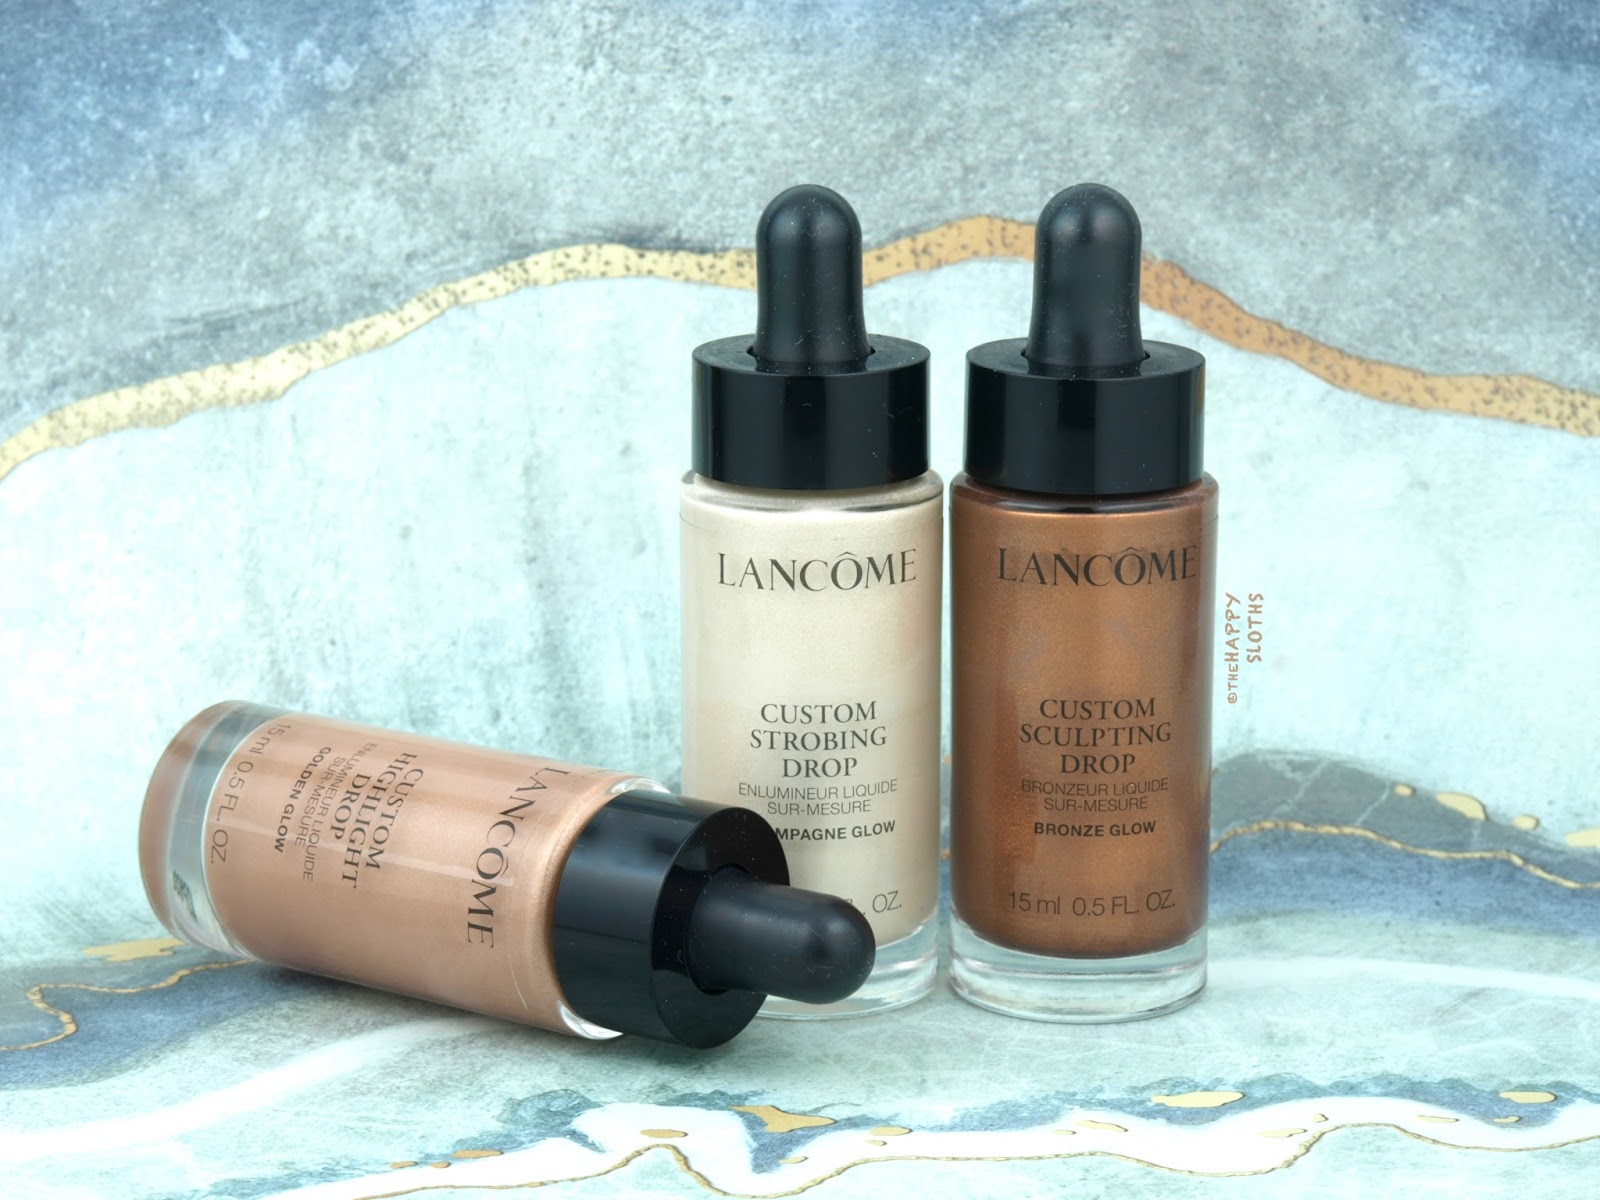 Lancome | Custom Glow Drops Ultra-Concentrated Liquid Highlighter: Review and Swatches